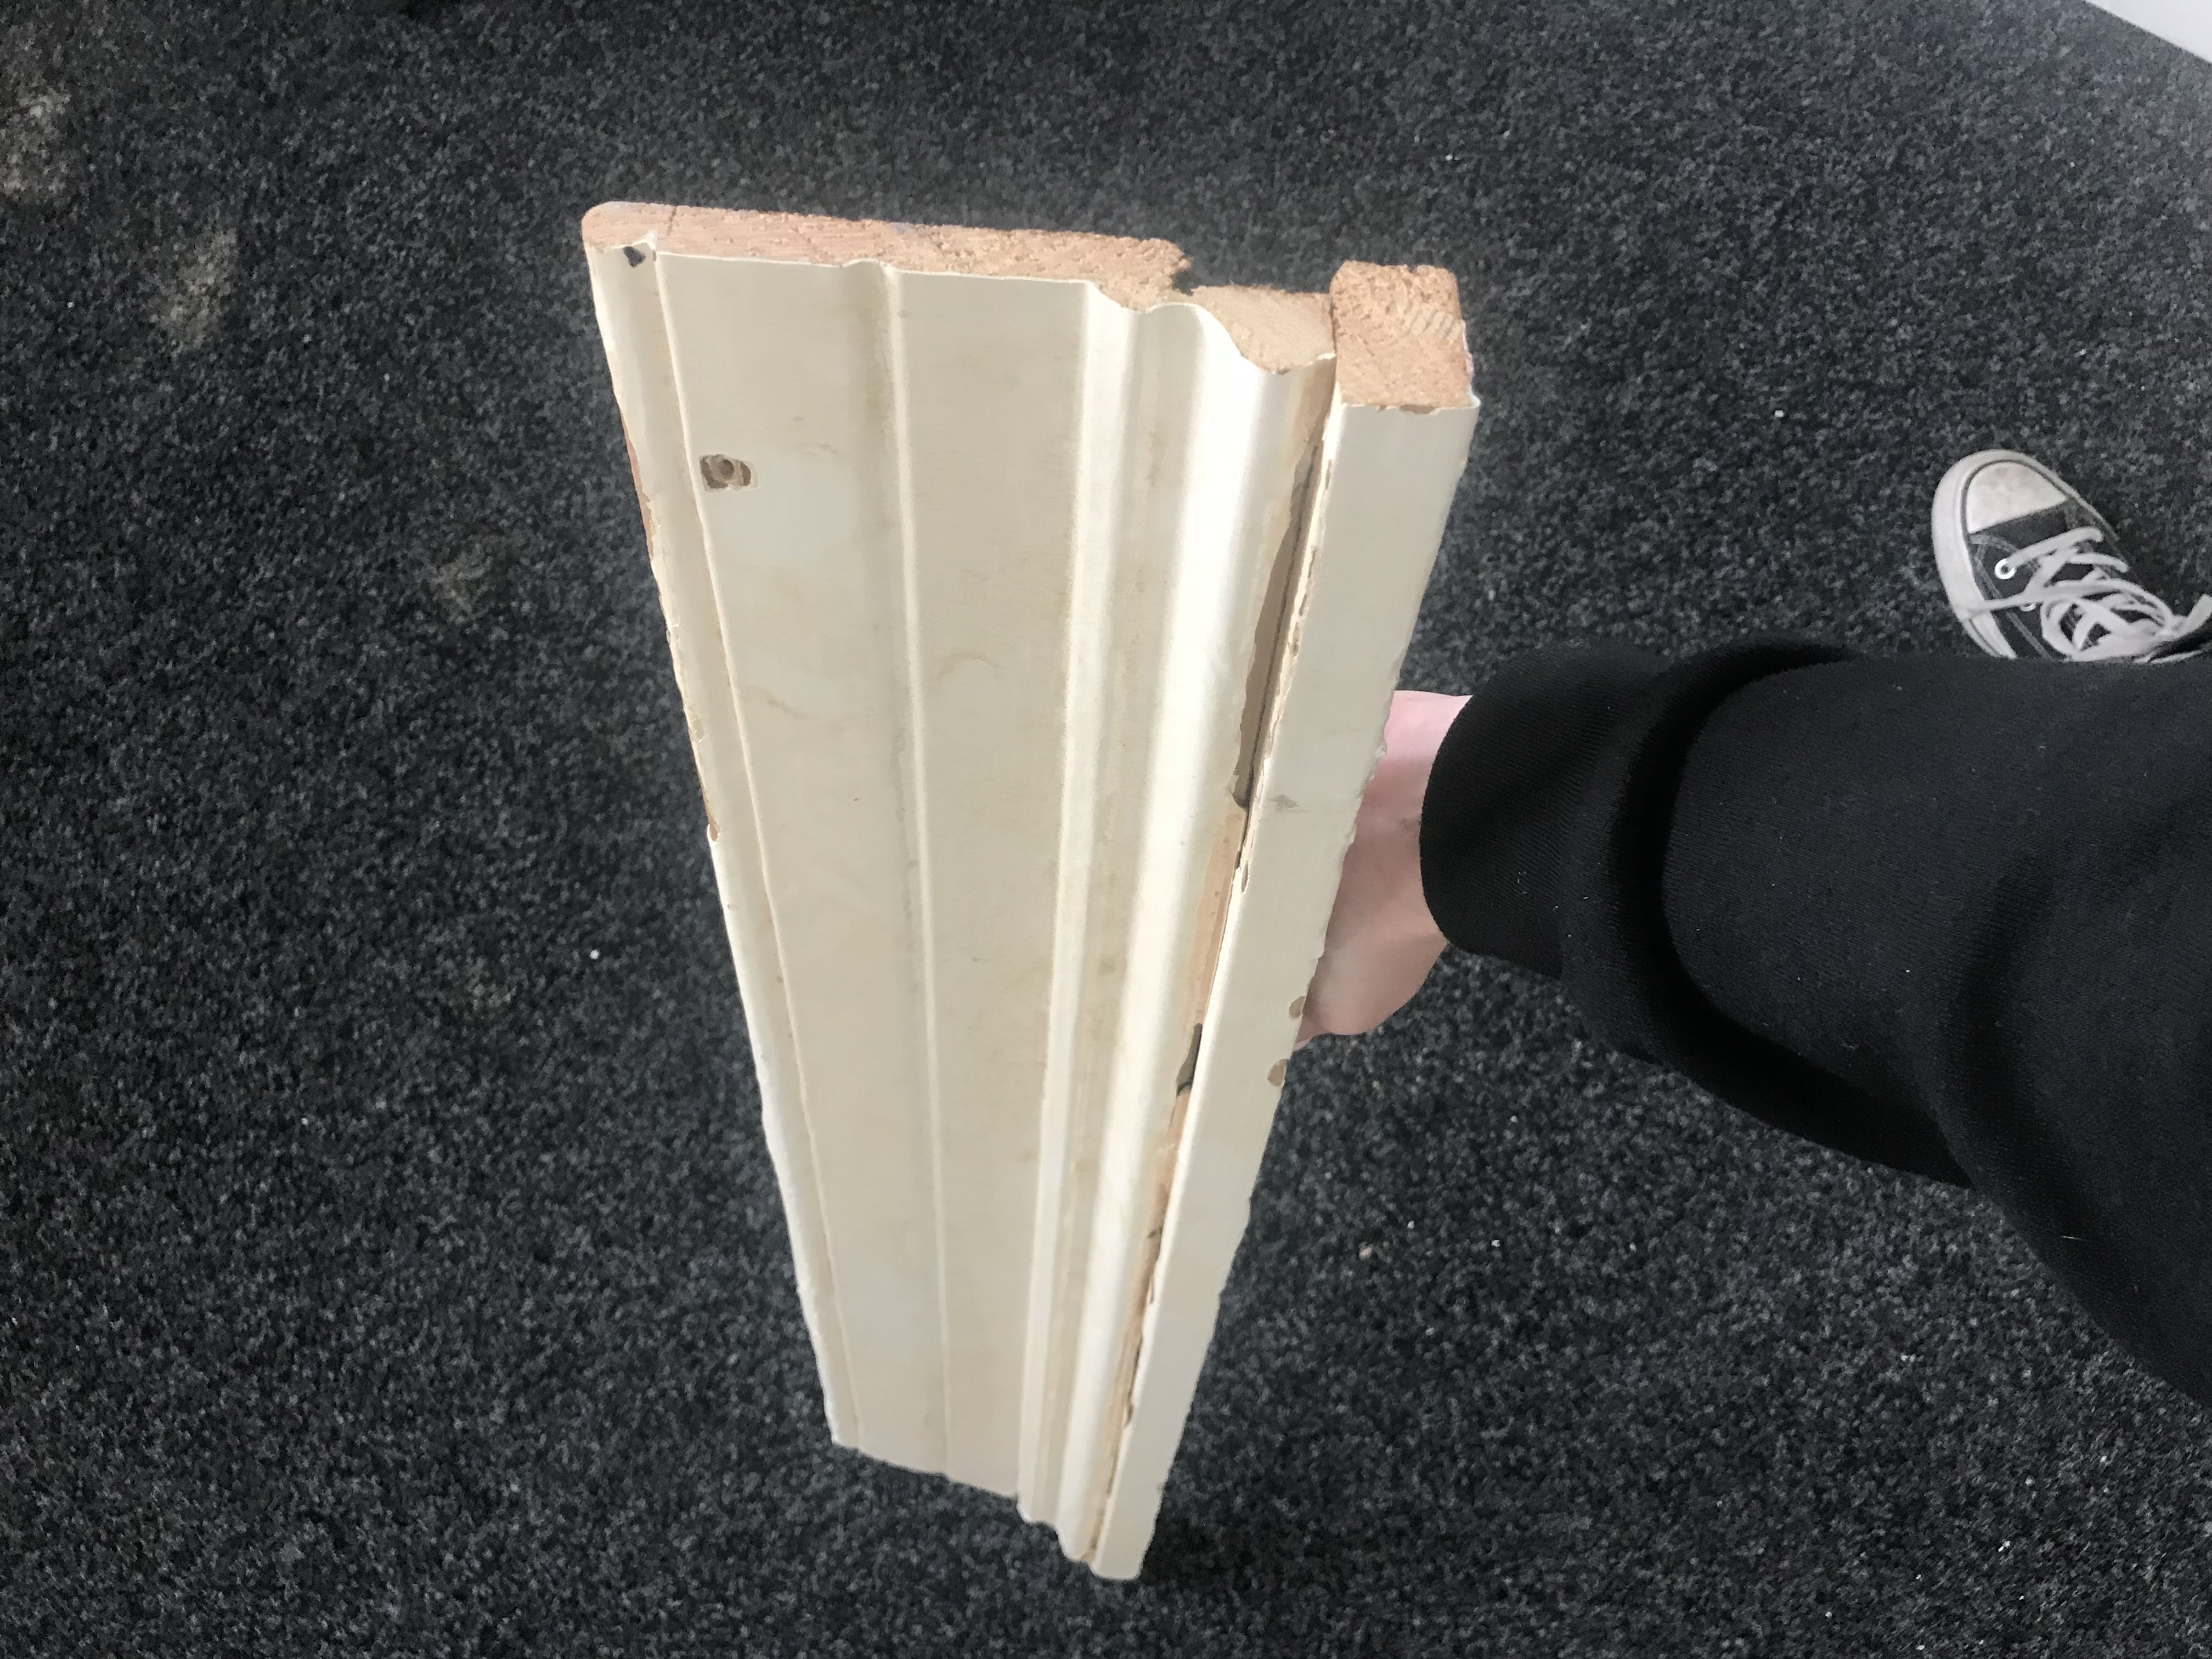 Customers existing architrave sample - front view